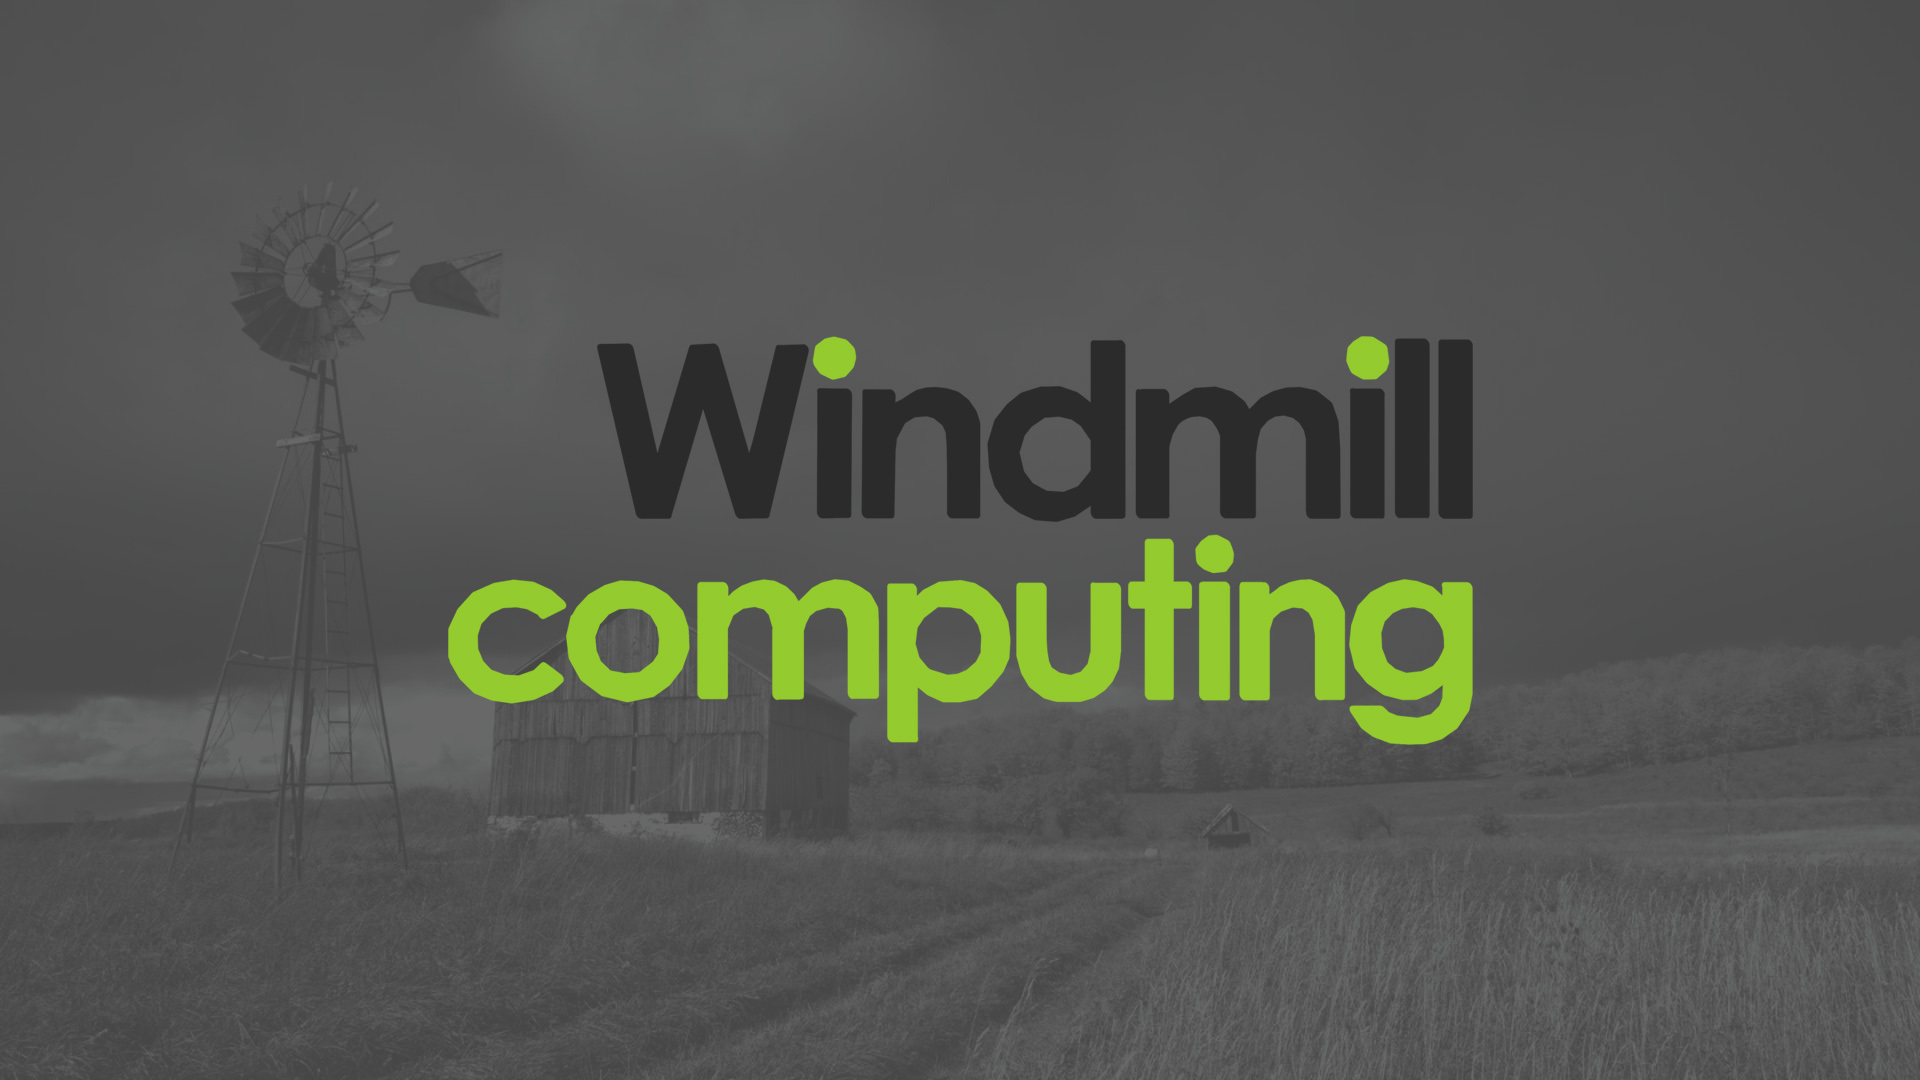 Windmill Computing